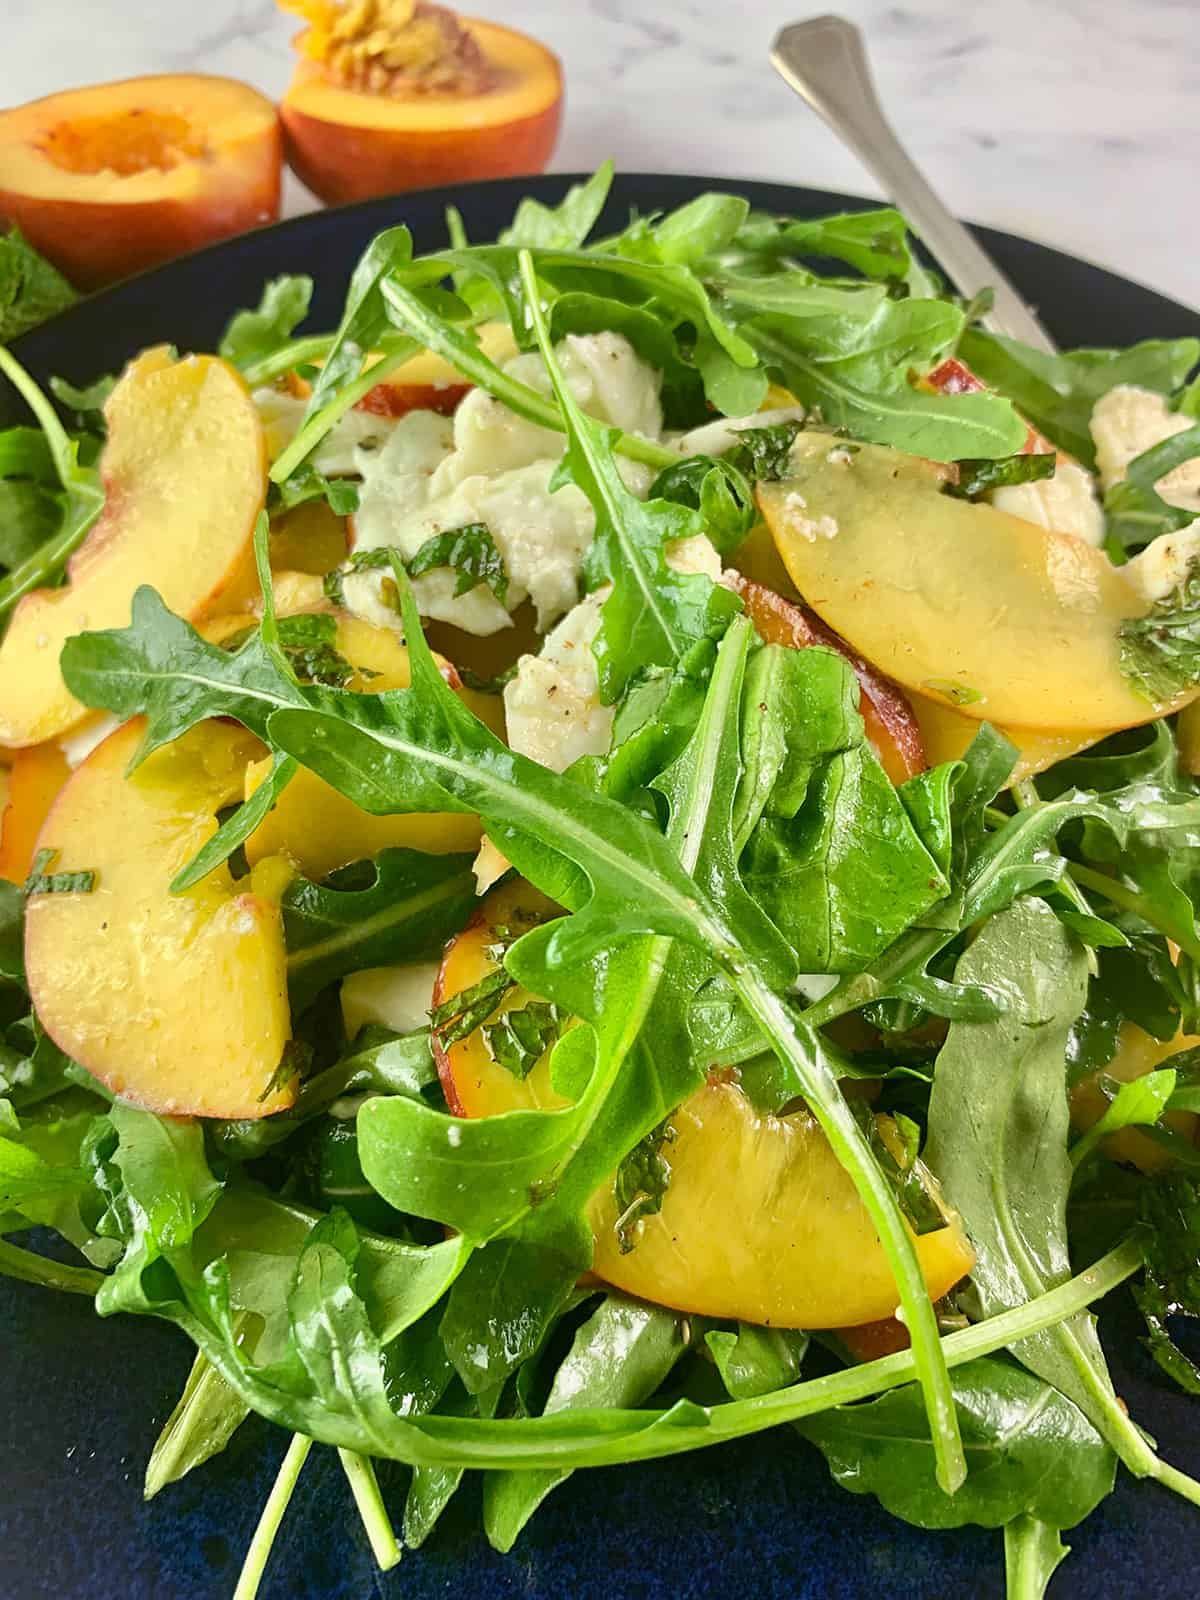 CLOSE UP OF PEACH SALAD IN PORTRAIT VIEW